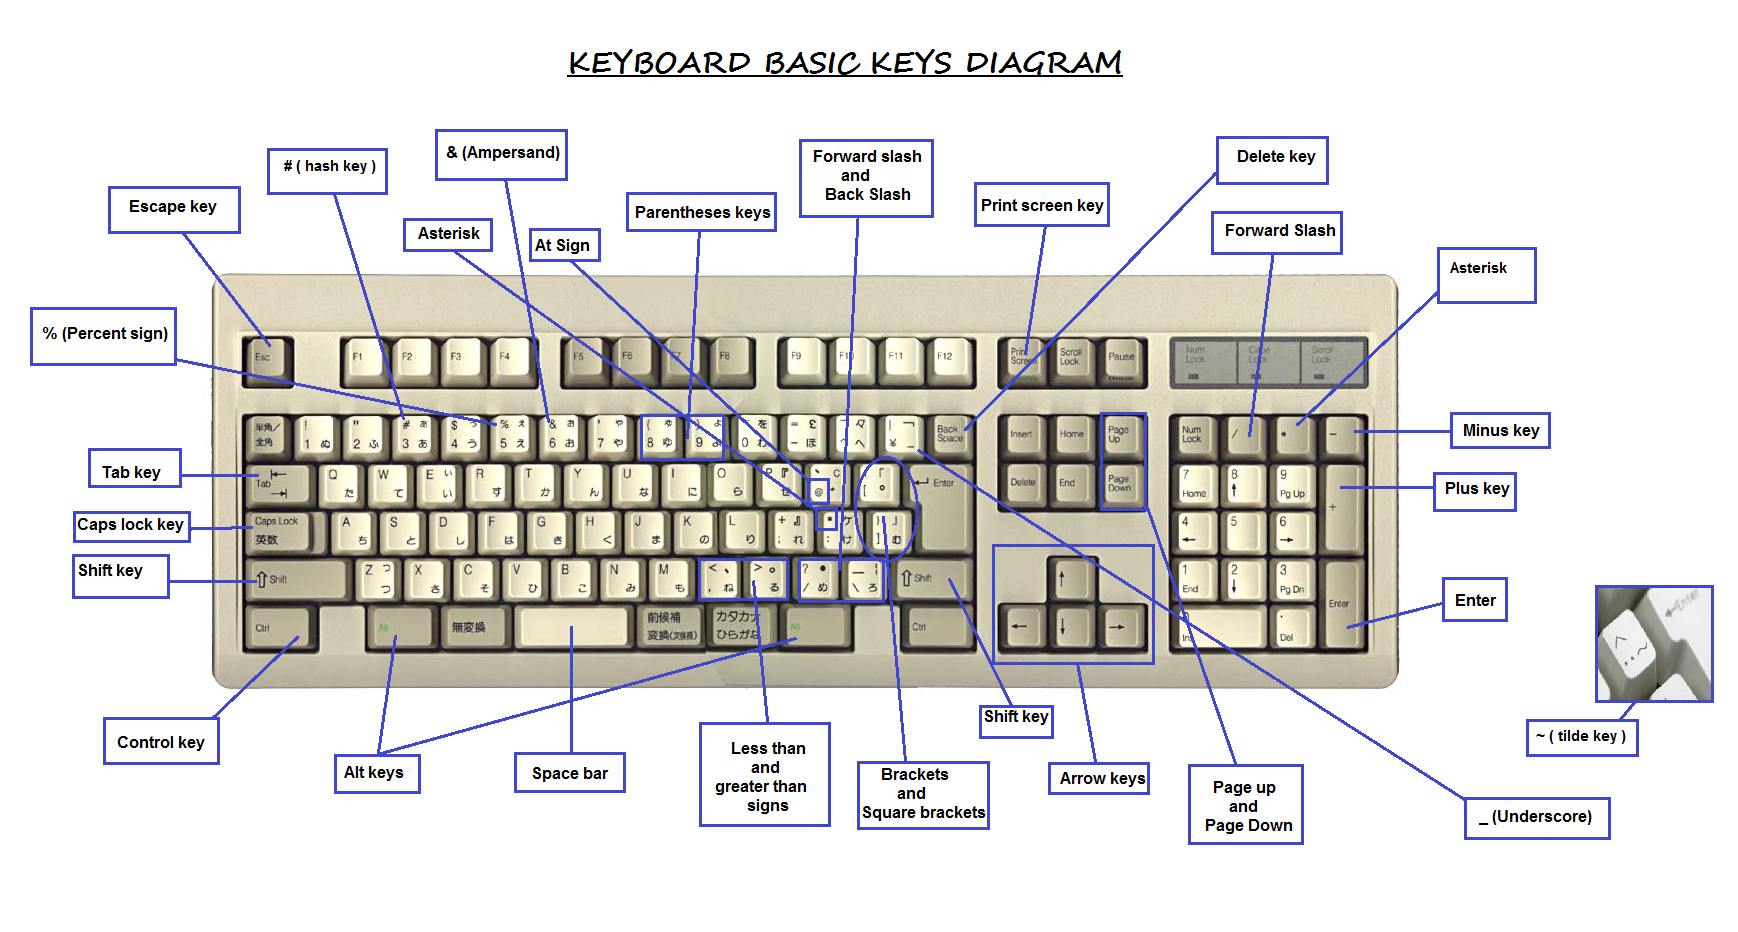 Keyboard symbols and their uses images symbol and sign ideas funny faces with keyboard symbols how to make shapes symbols using funny faces with keyboard symbols biocorpaavc